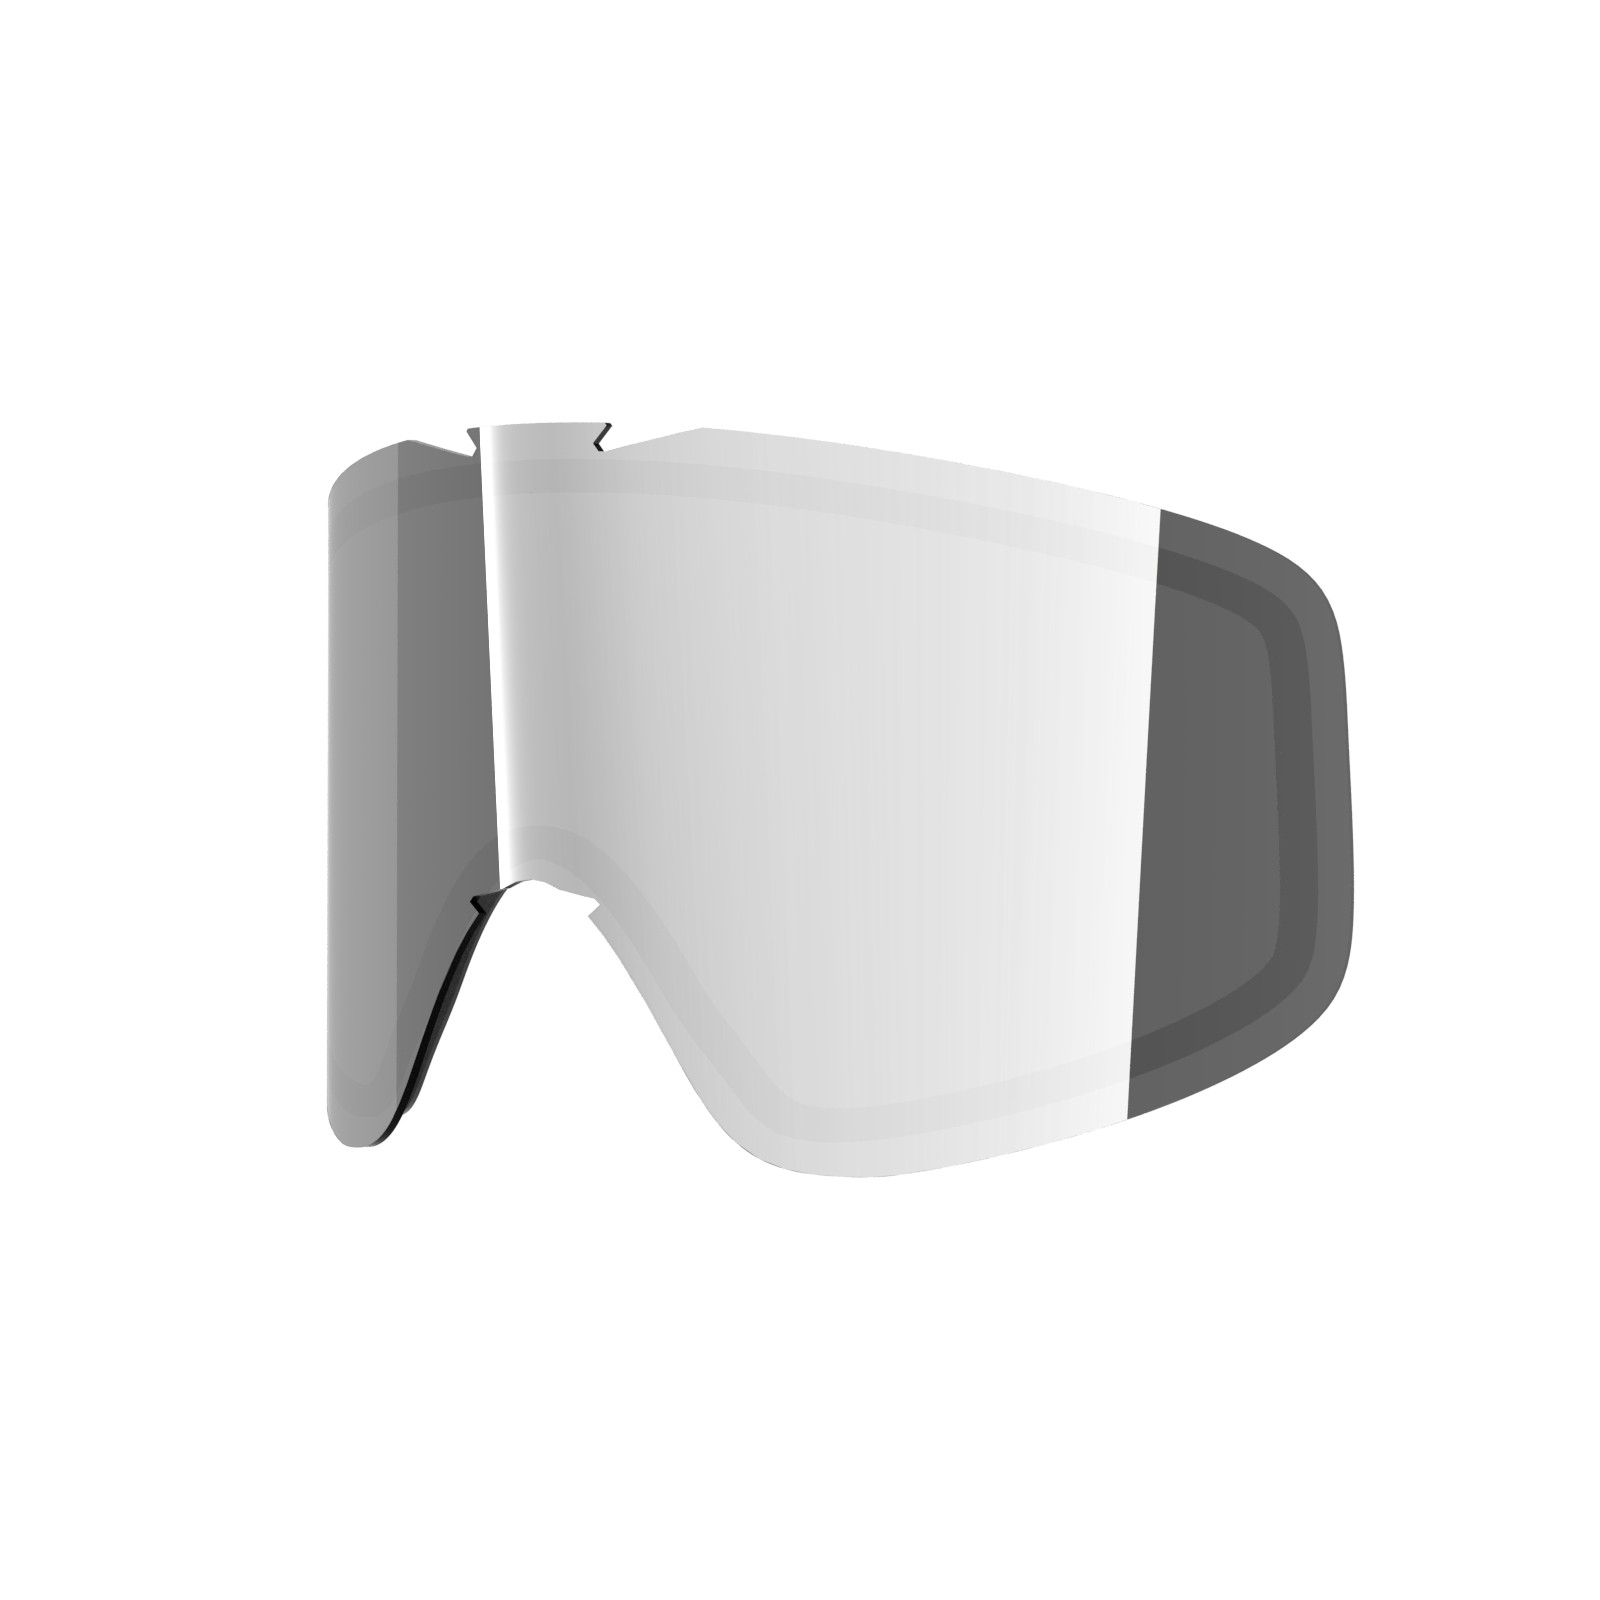 SILVER lens for  Flat goggle